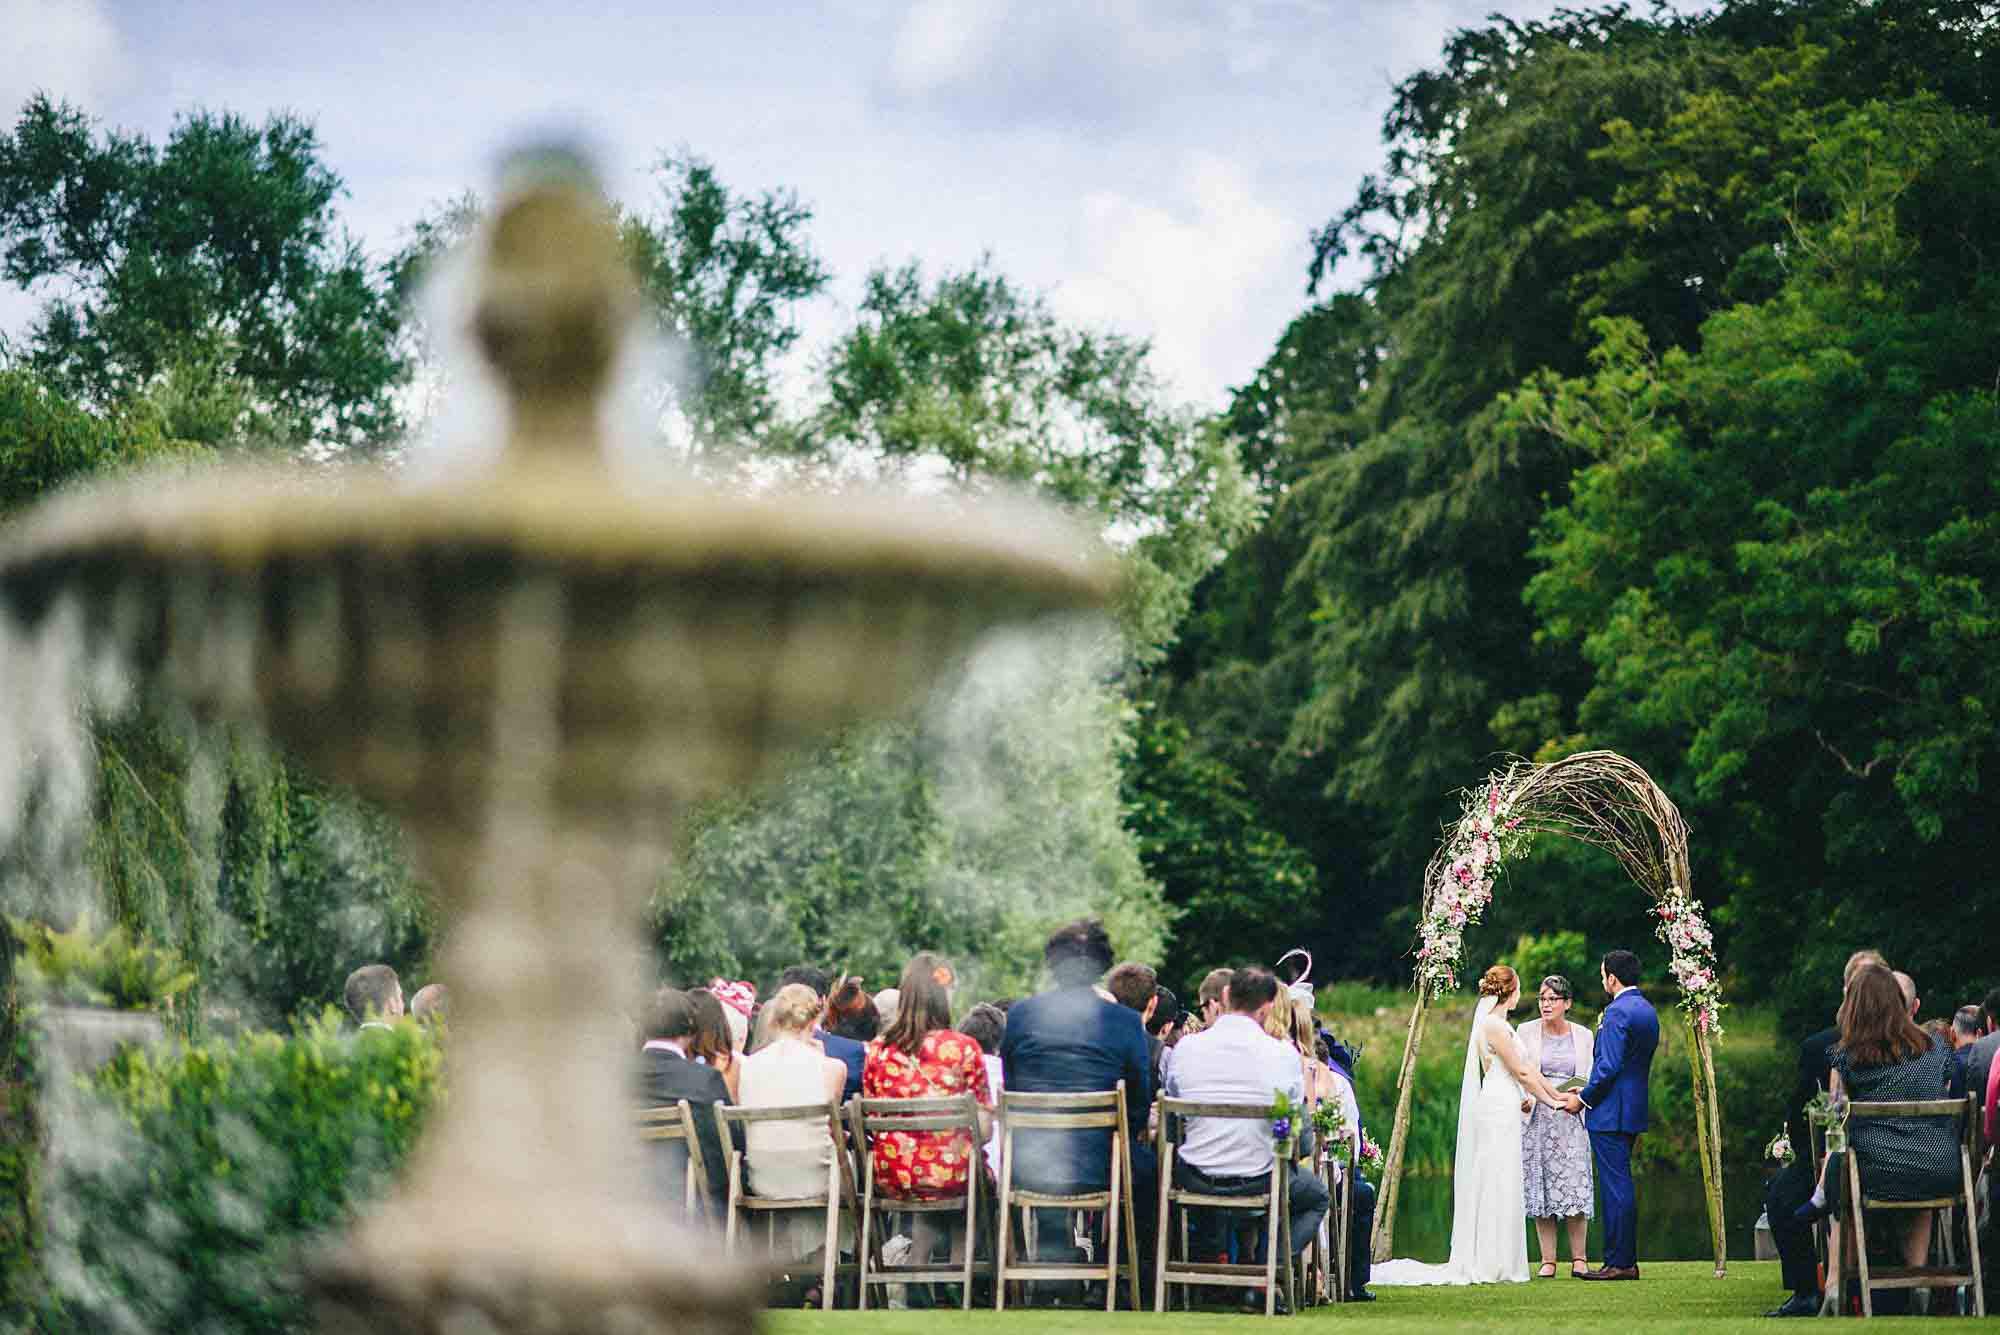 Narborough Hall Gardens wedding photography 27 Completed